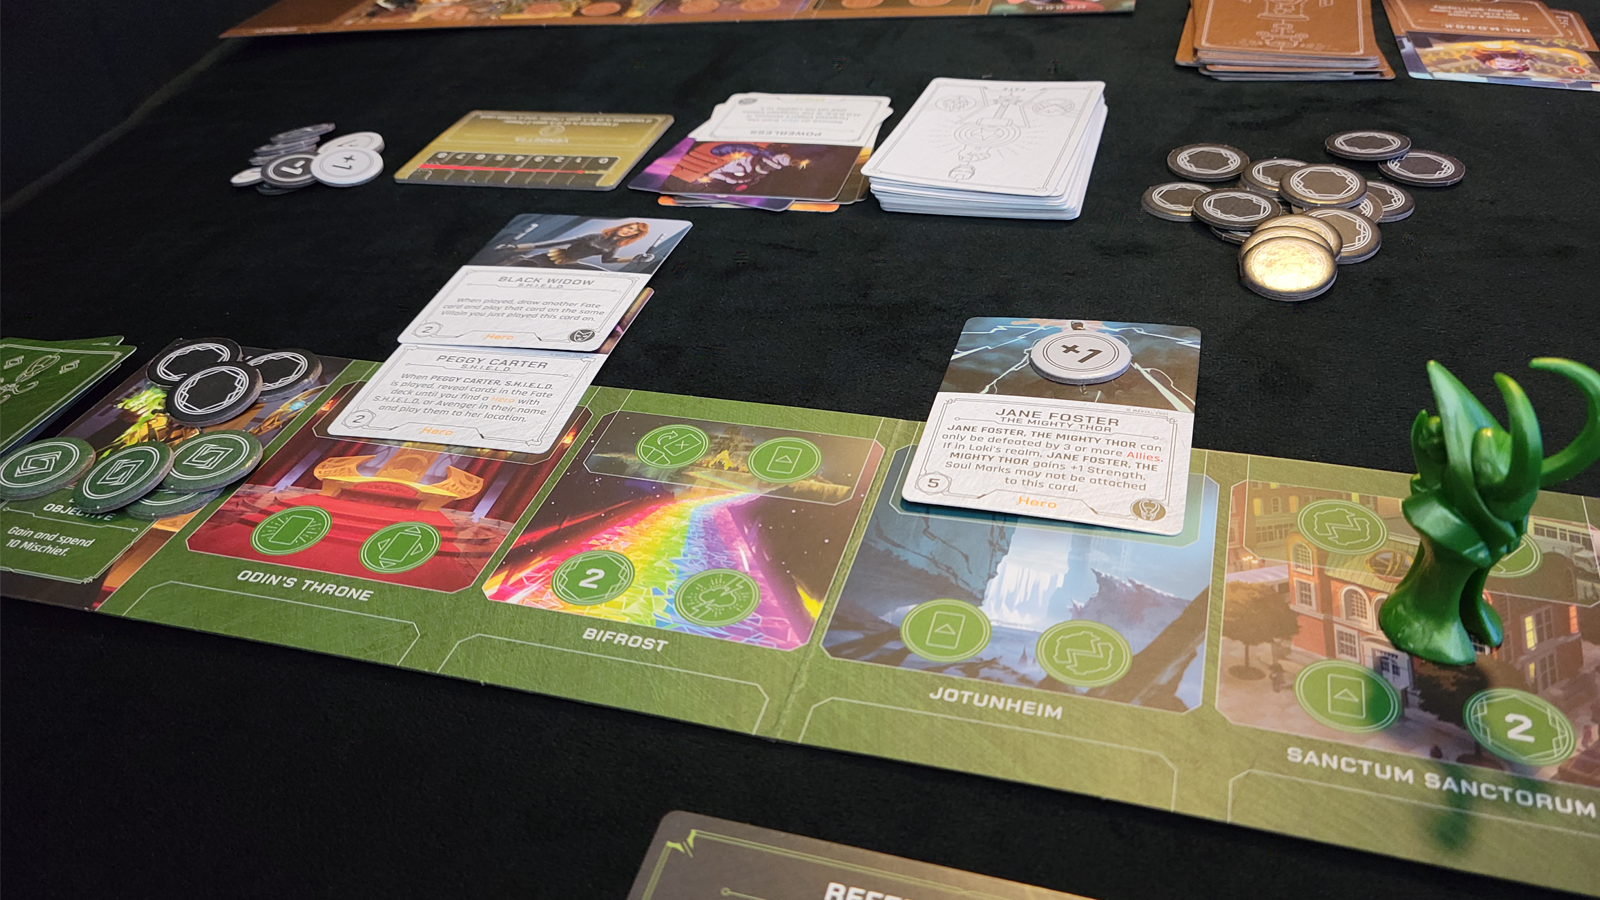 Loki's Domain with opponent cards and tokens in play